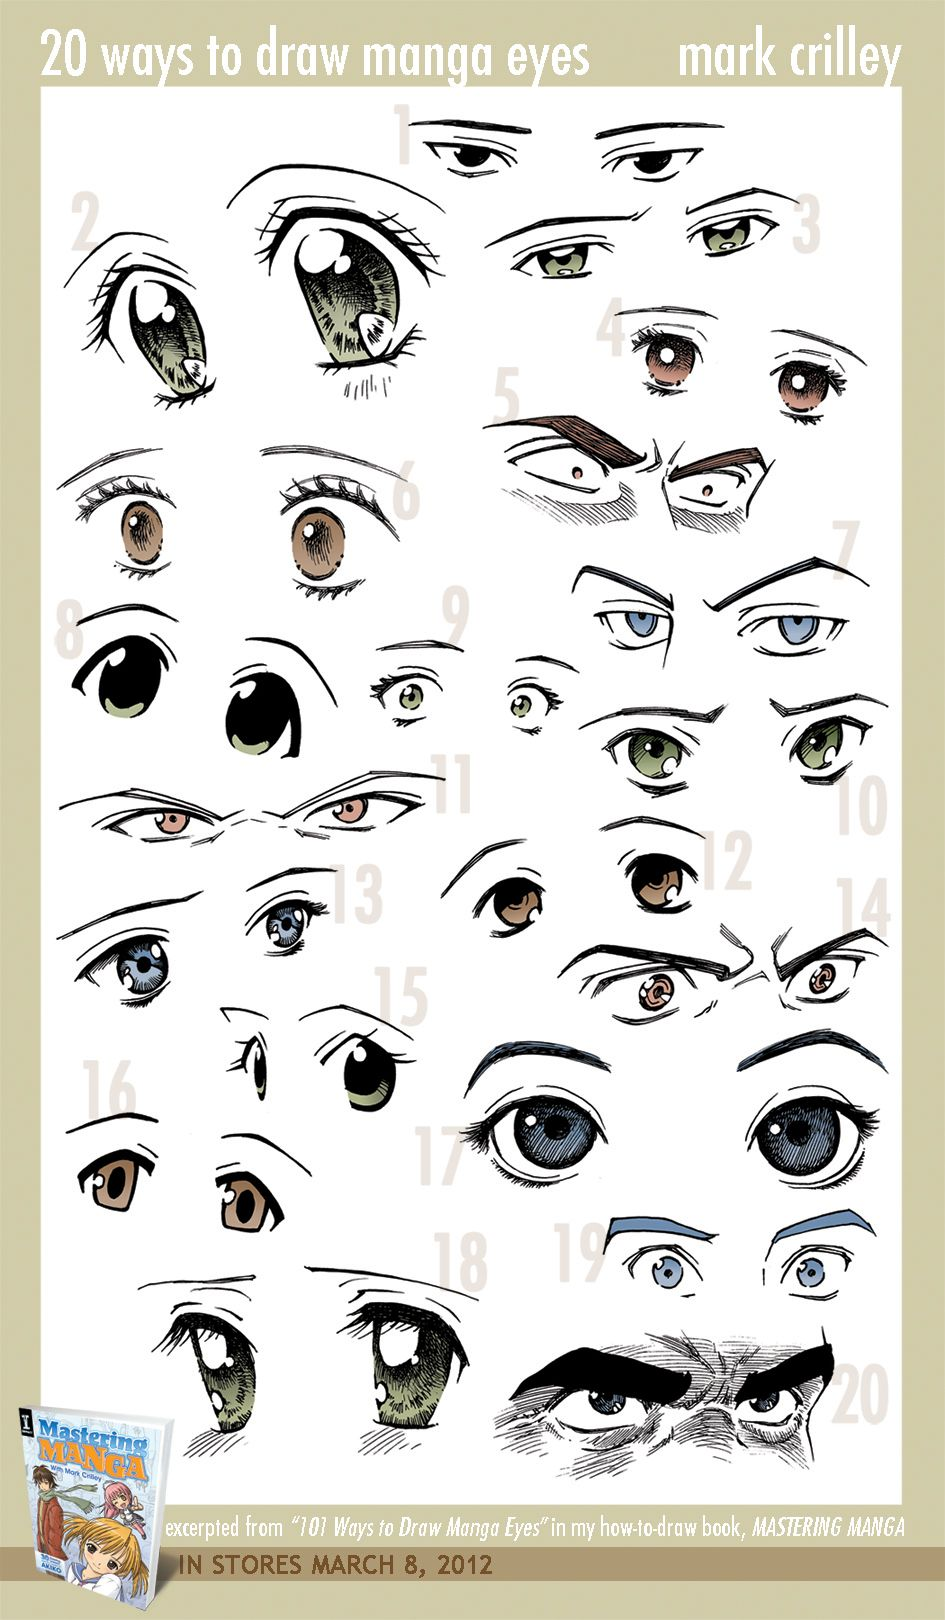 20 ways to draw manga eyes by markcrilleyiantart drawing 20 ways to draw manga eyes by markcrilleyiantart ccuart Image collections